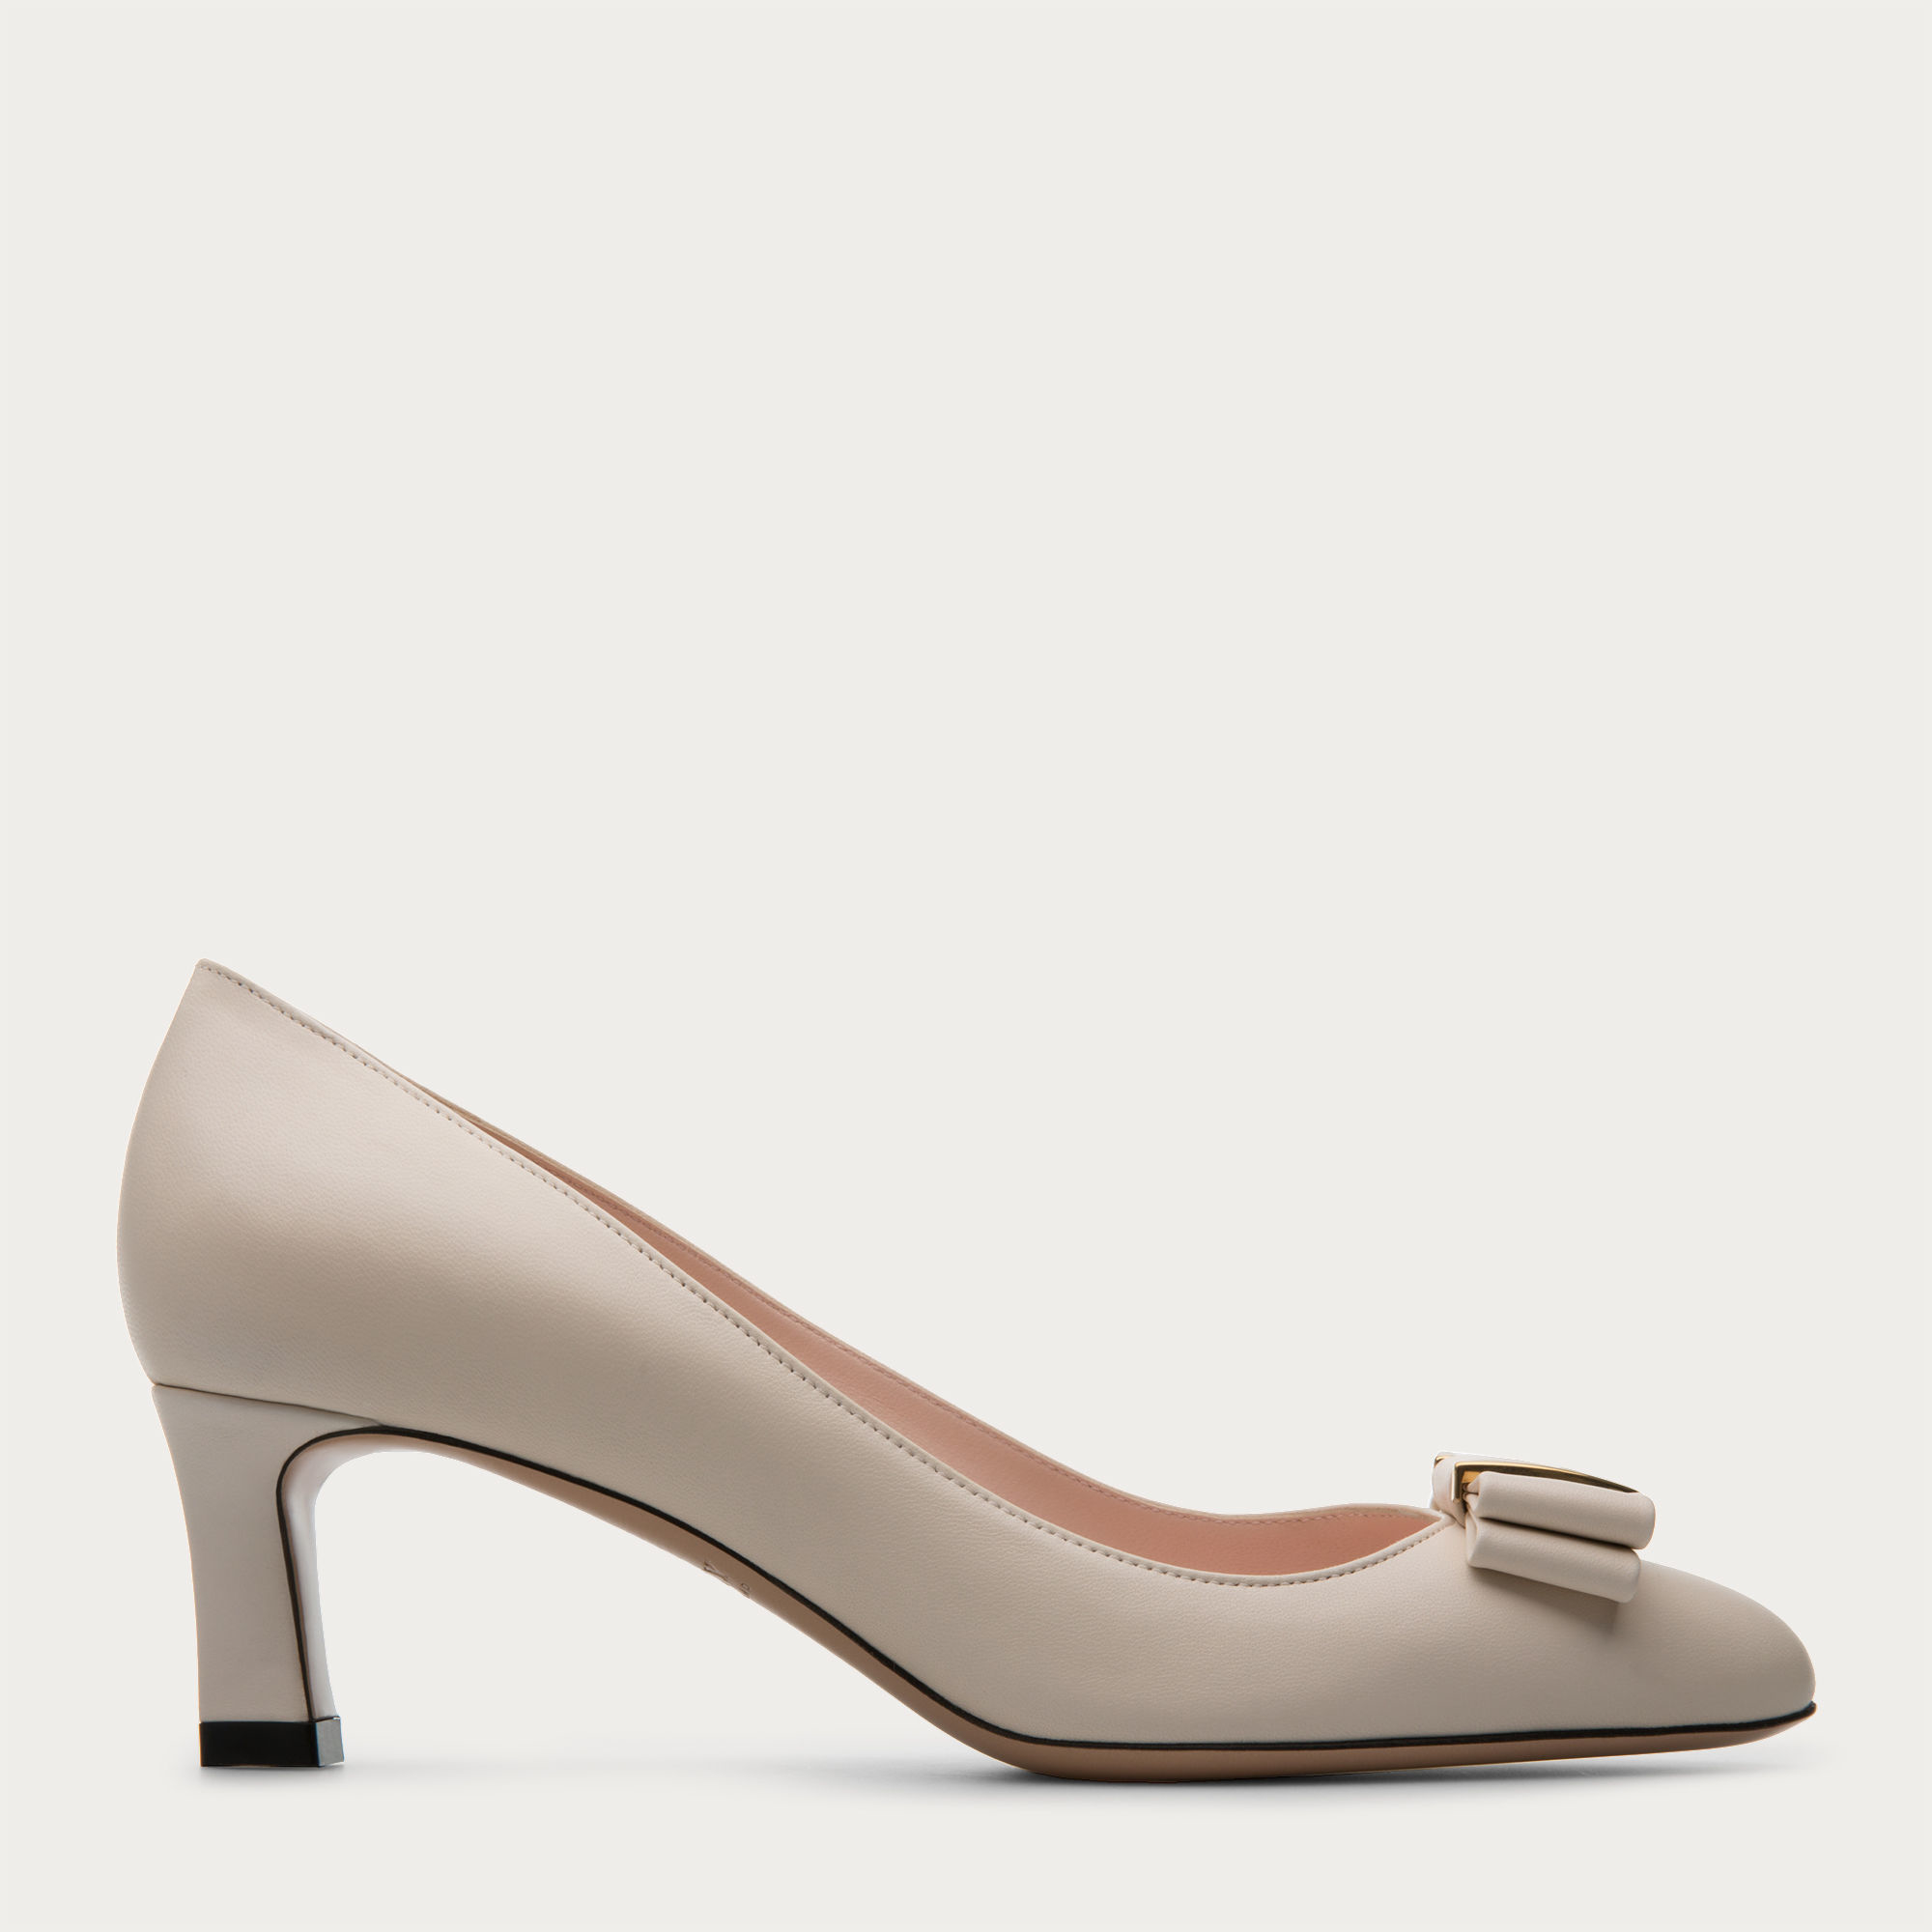 d9adc00c40d5 Bally Bellyna Women ́s Leather Pump In Bone in Natural - Lyst